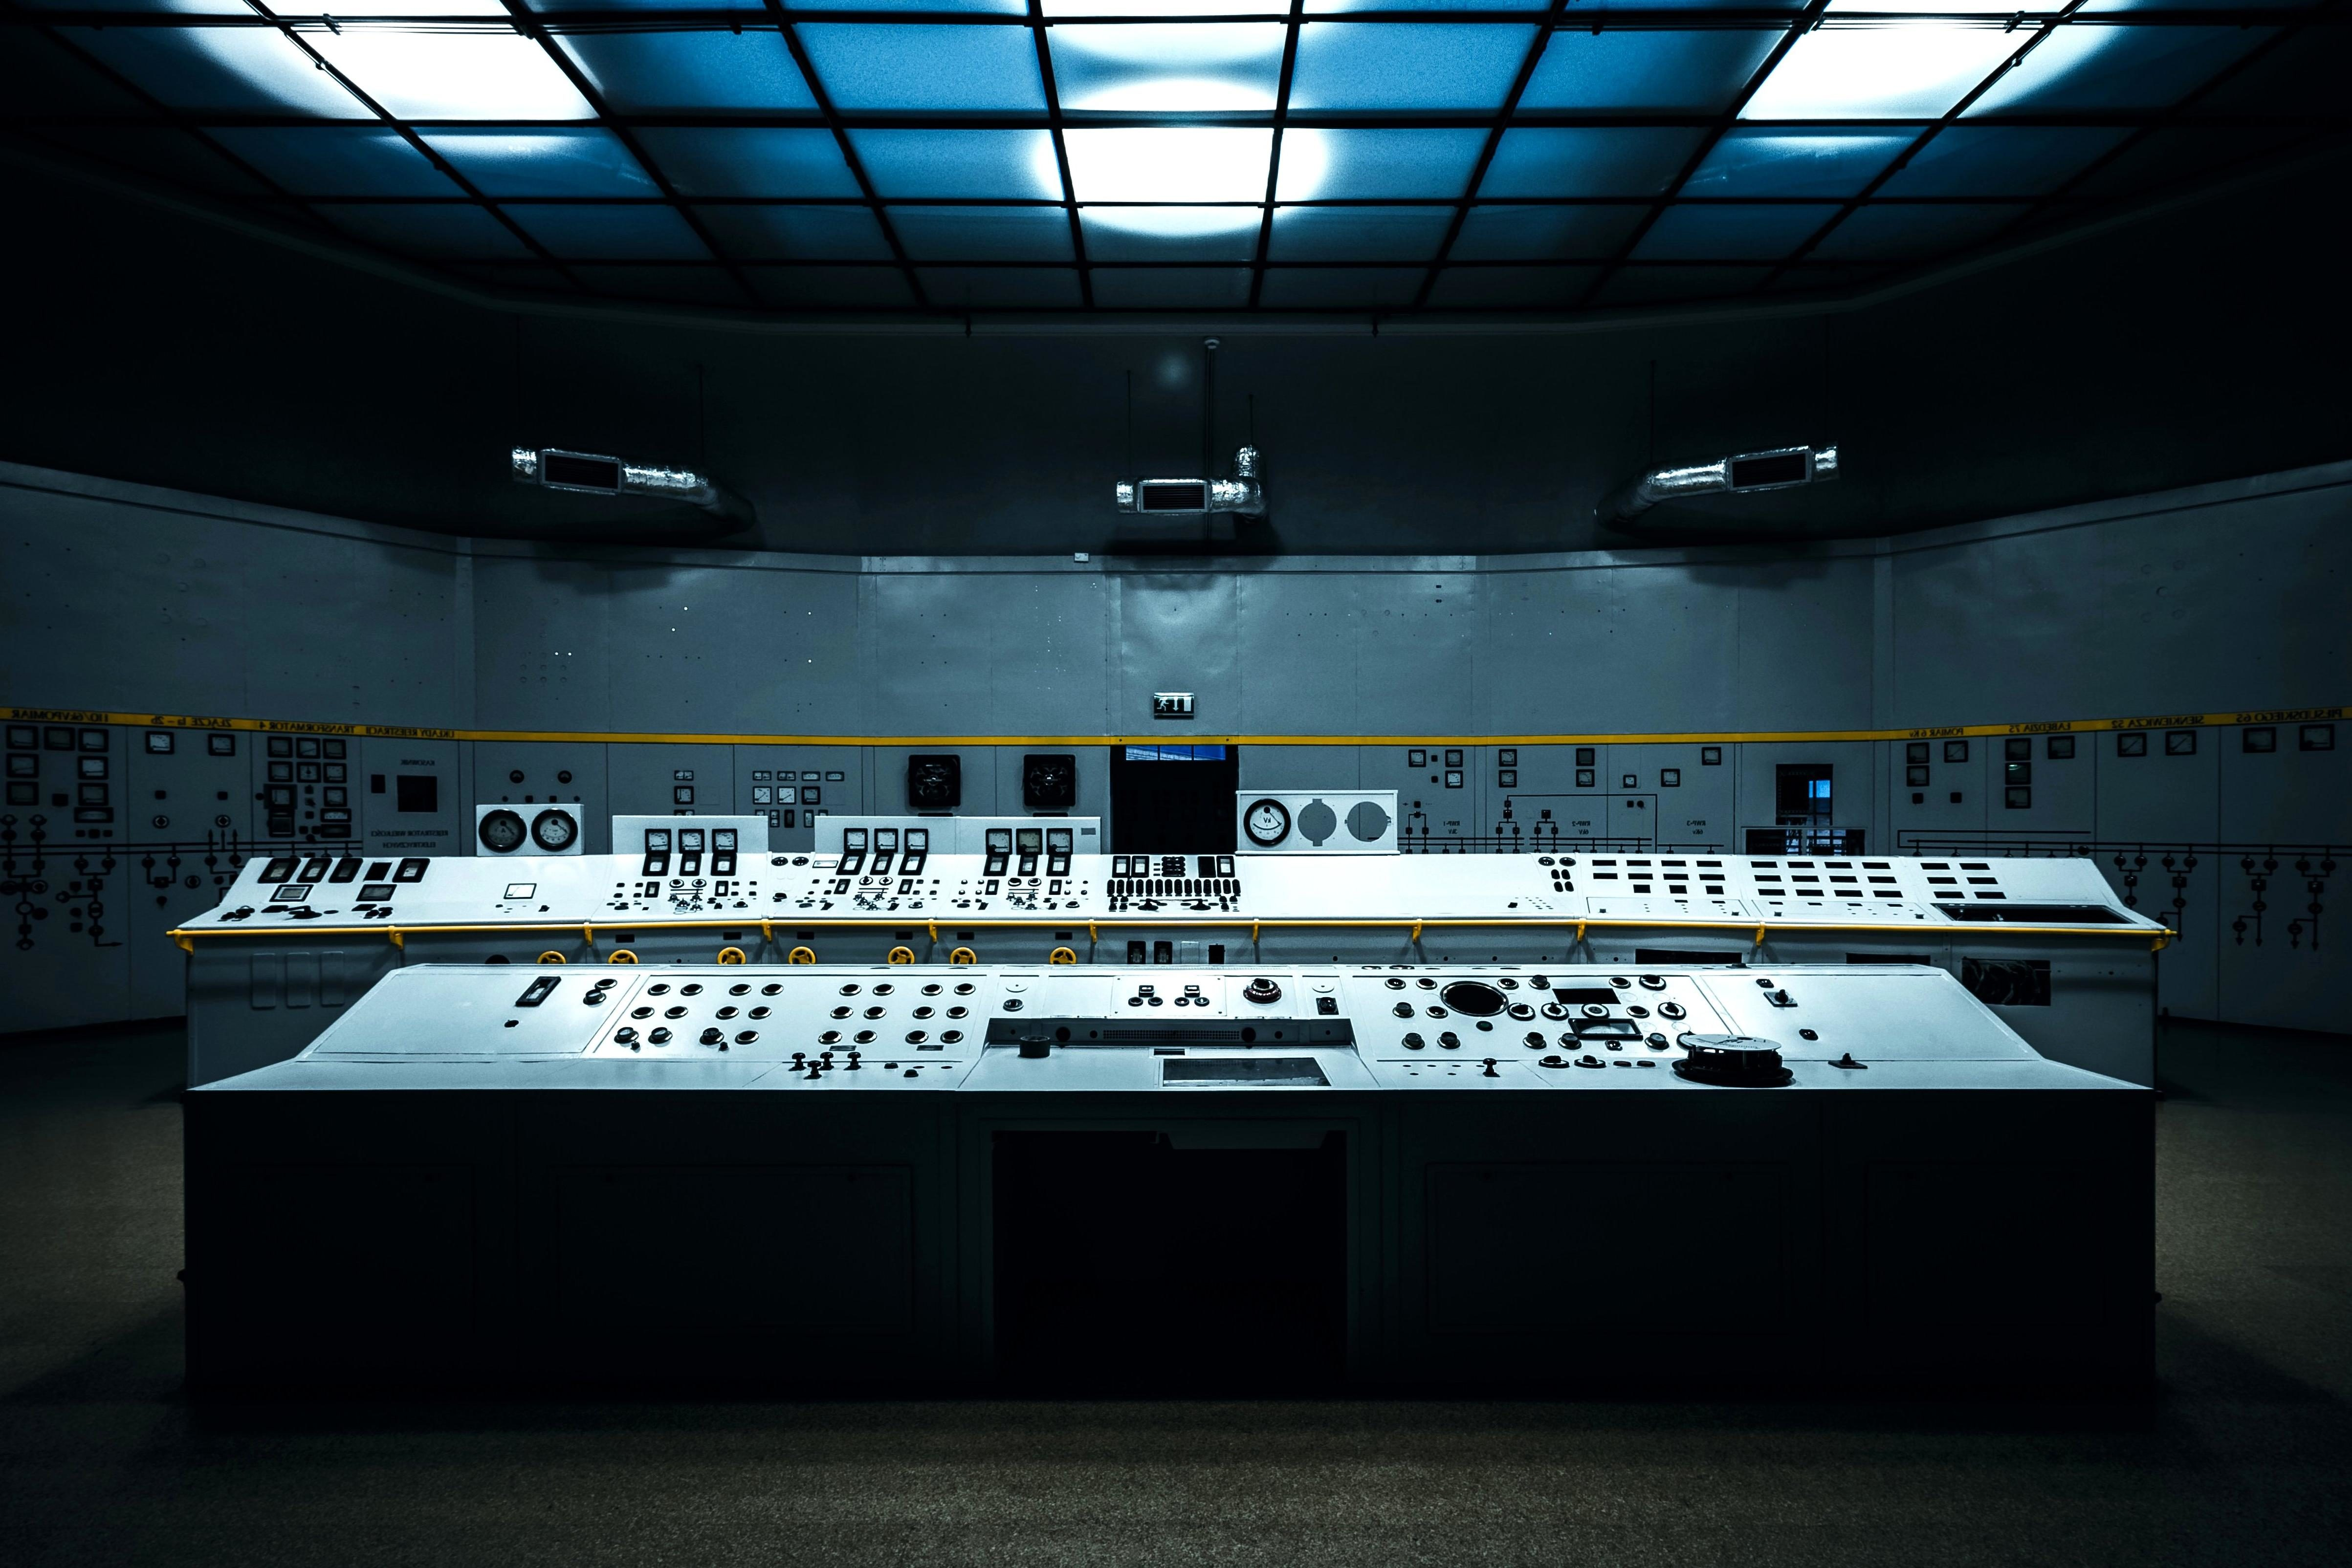 Free picture control center room workplace dark